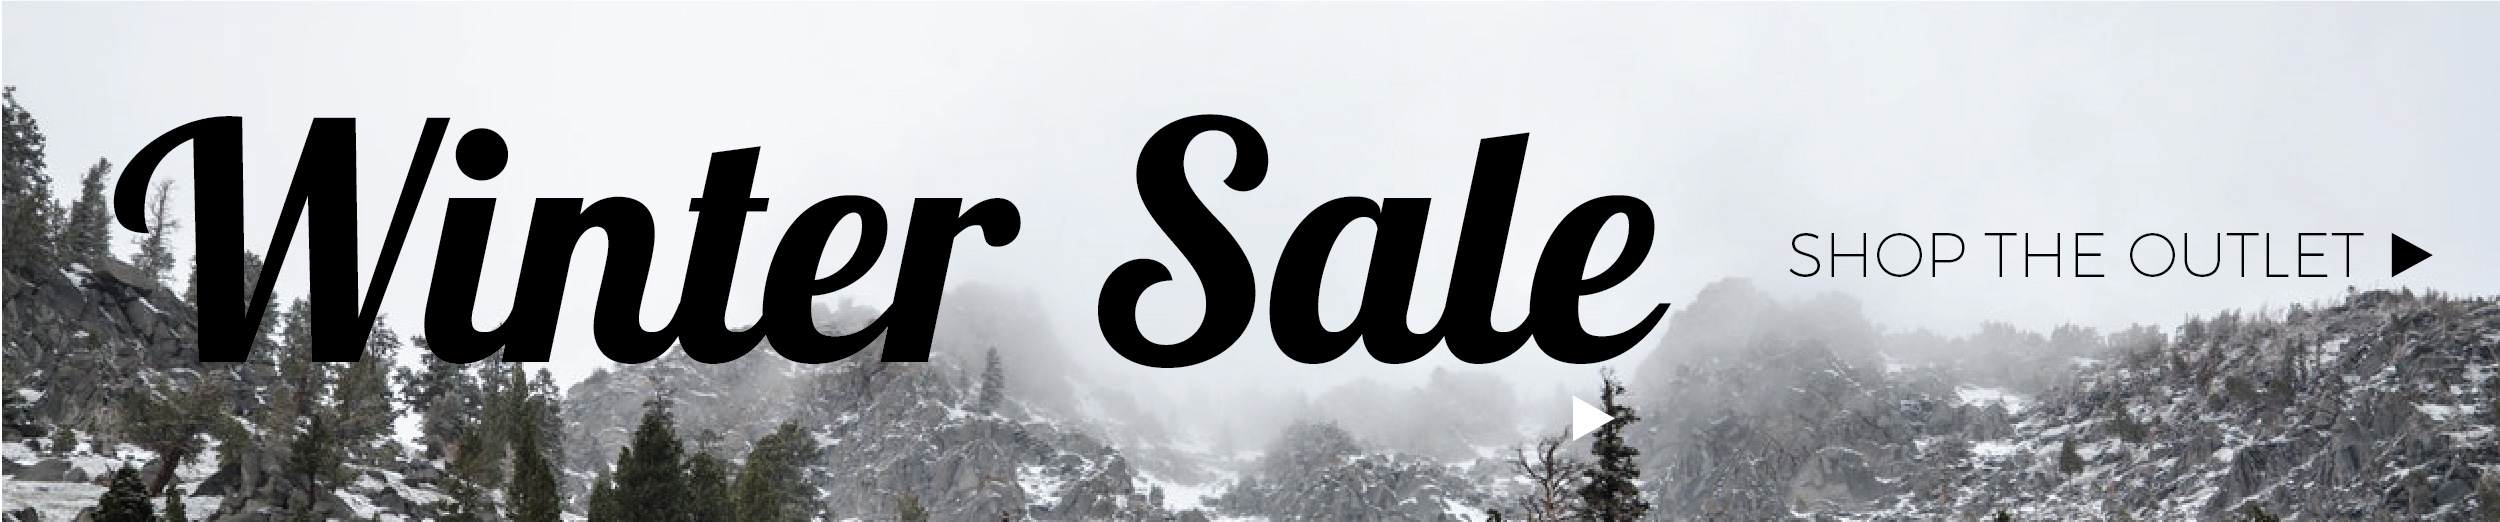 winter outlet sale deals